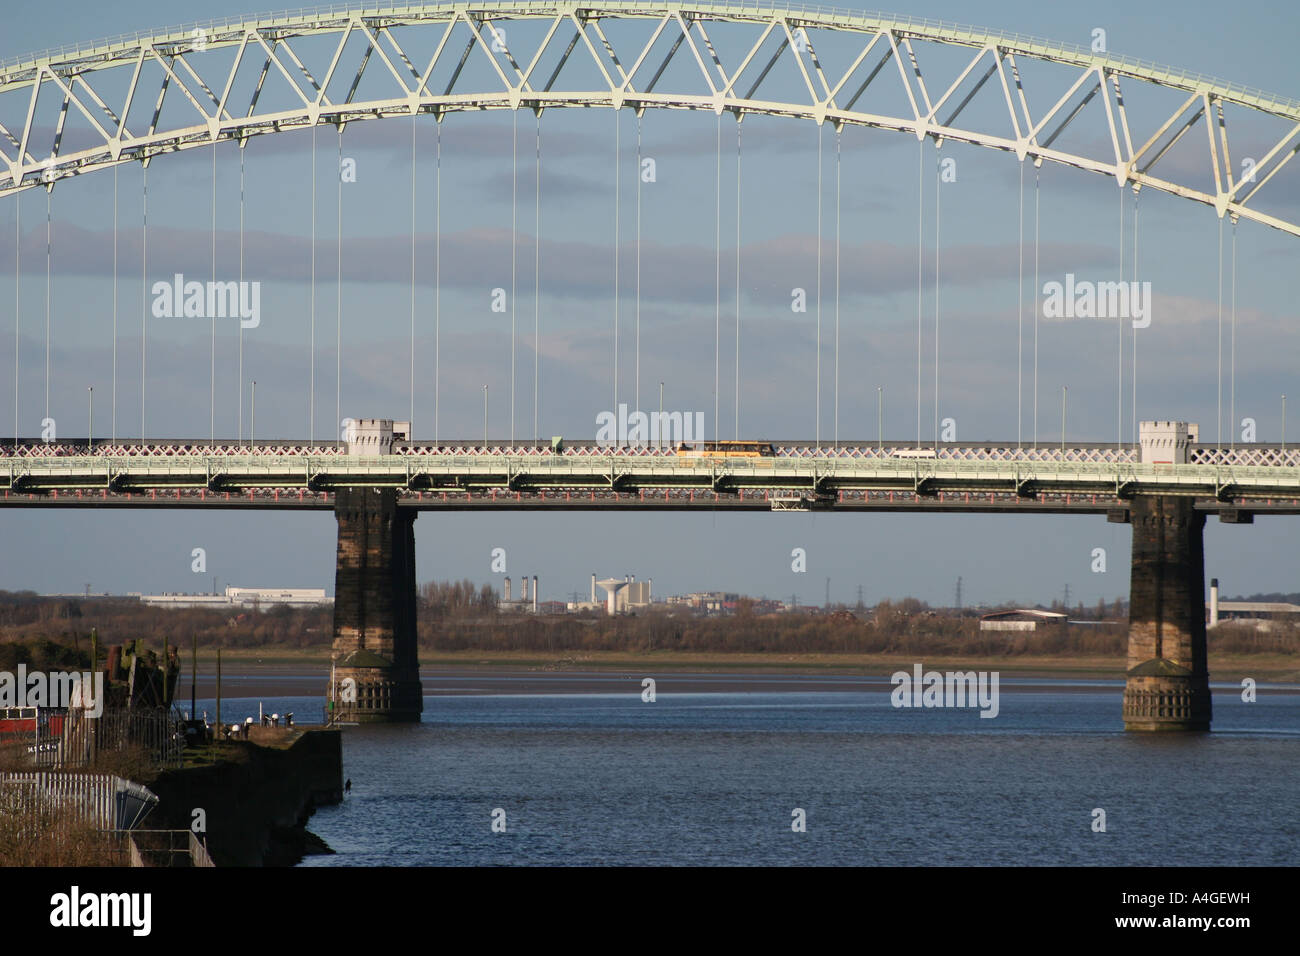 The old Silver Jubilee Bridge over the River Mersey and Manchester Ship Canal between Runcorn & Widnes, Cheshire, Stock Photo